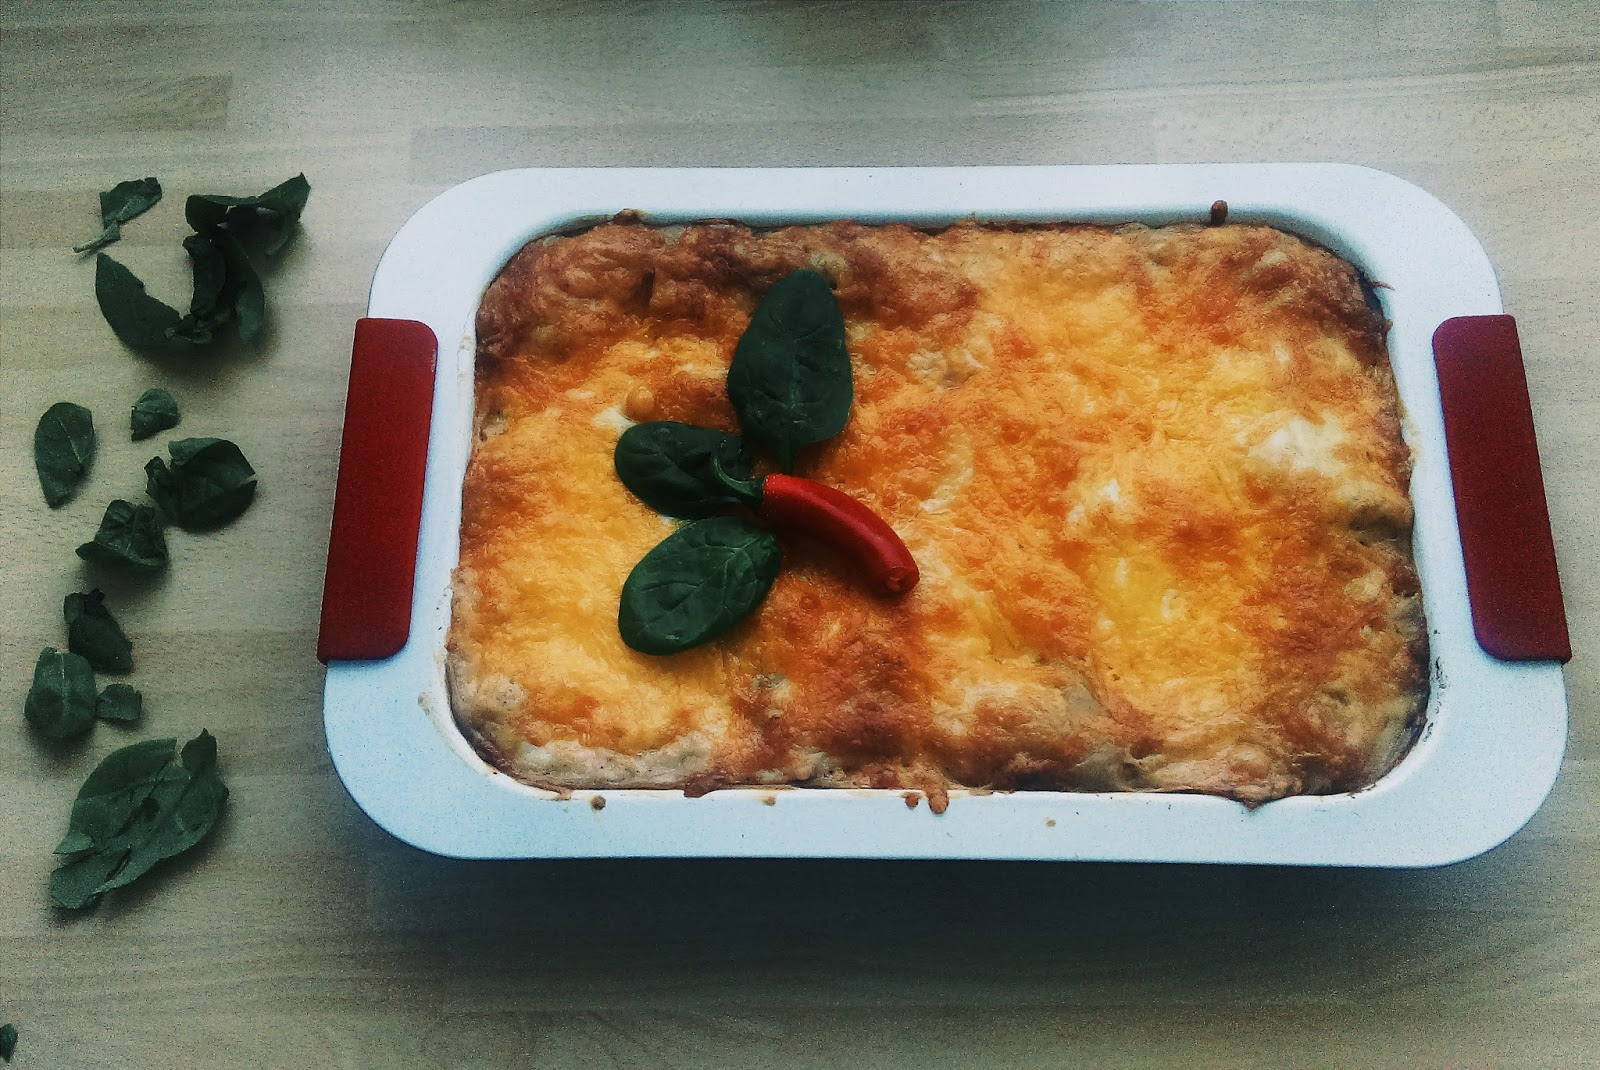 A .@SaclaUK Lasagne – My First Recipe Post